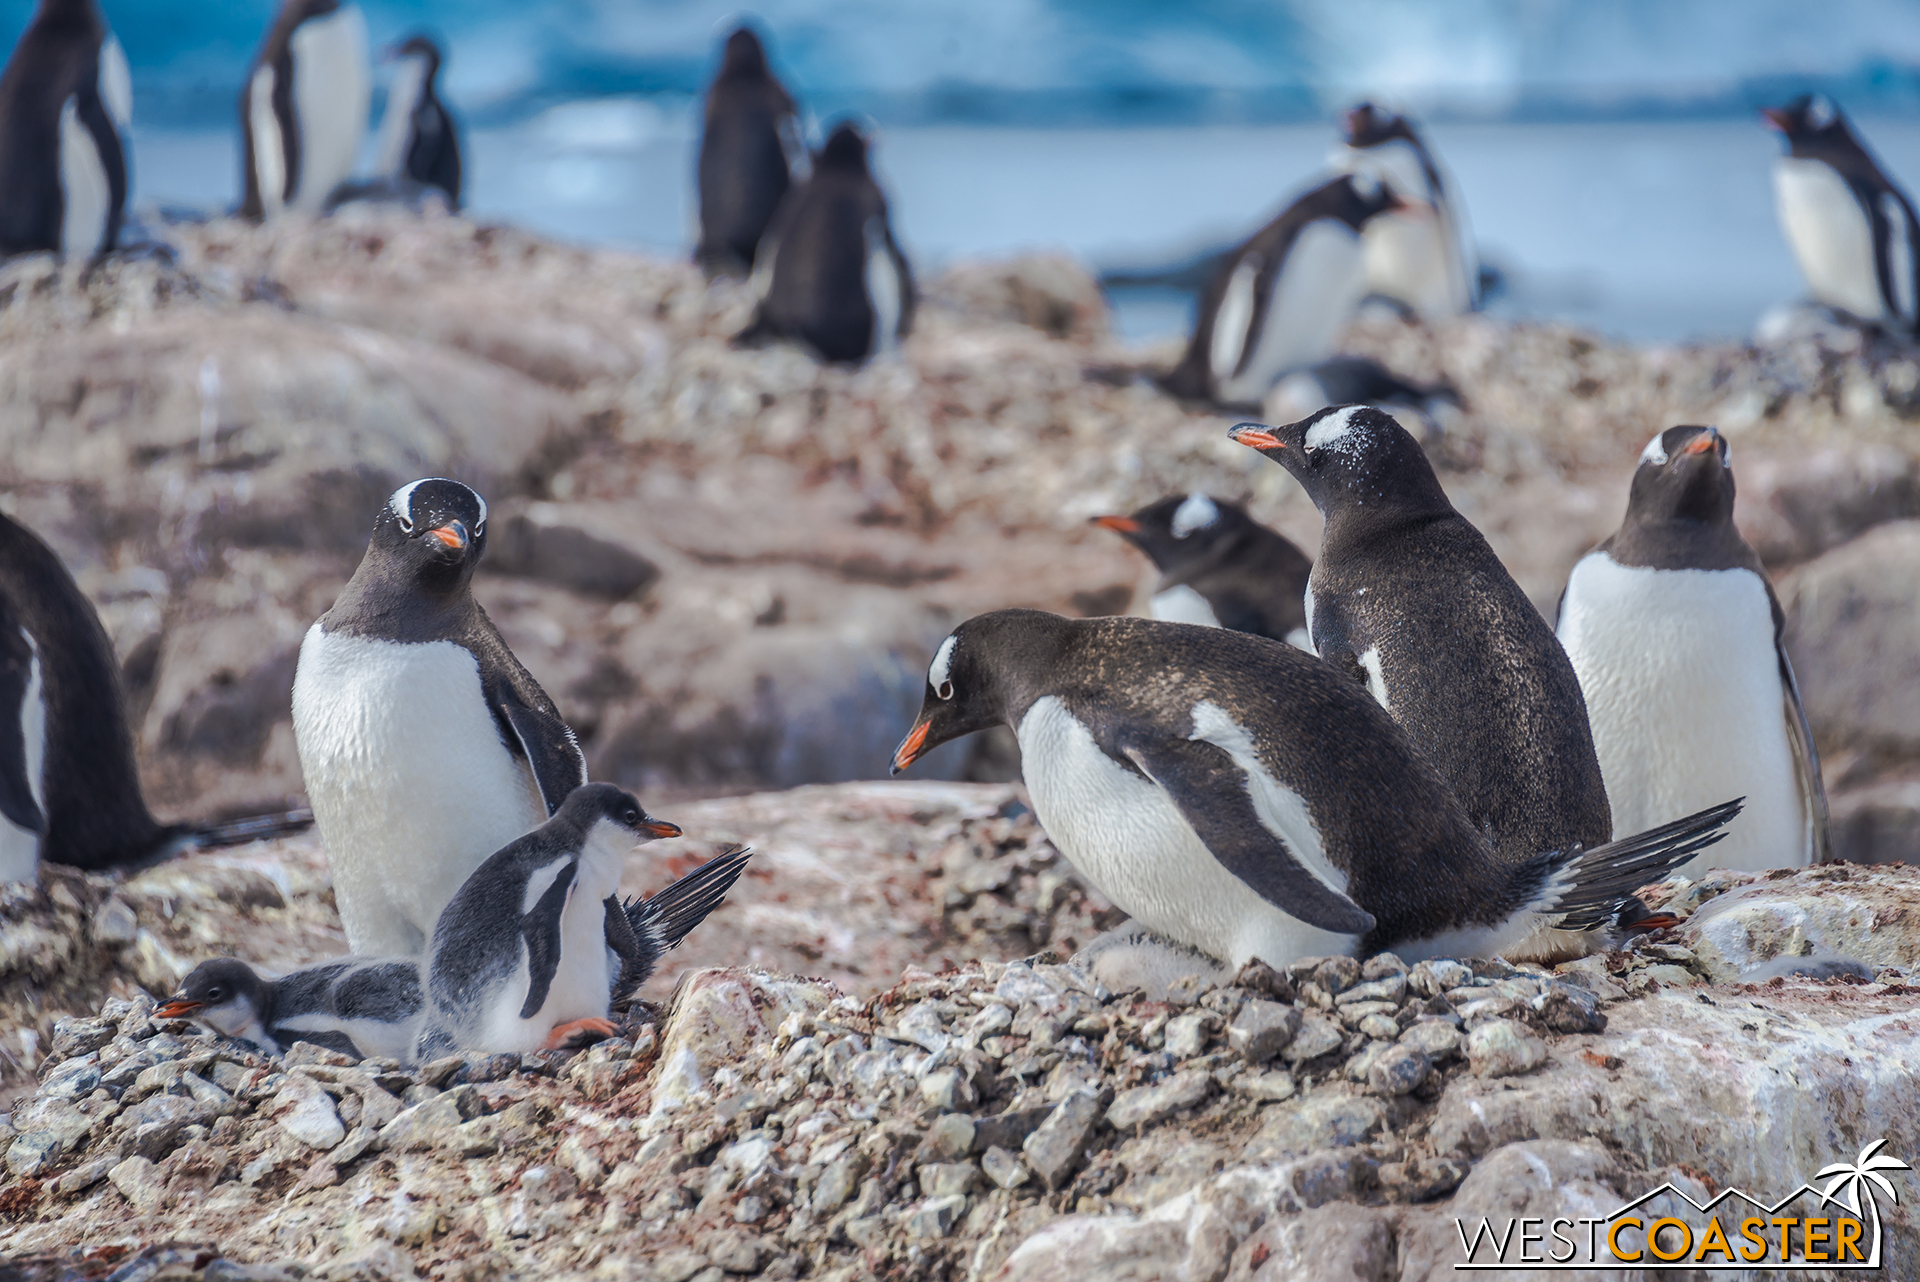 Unsurprisingly, Antarctica gave the opportunity to see literally thousands of penguins.